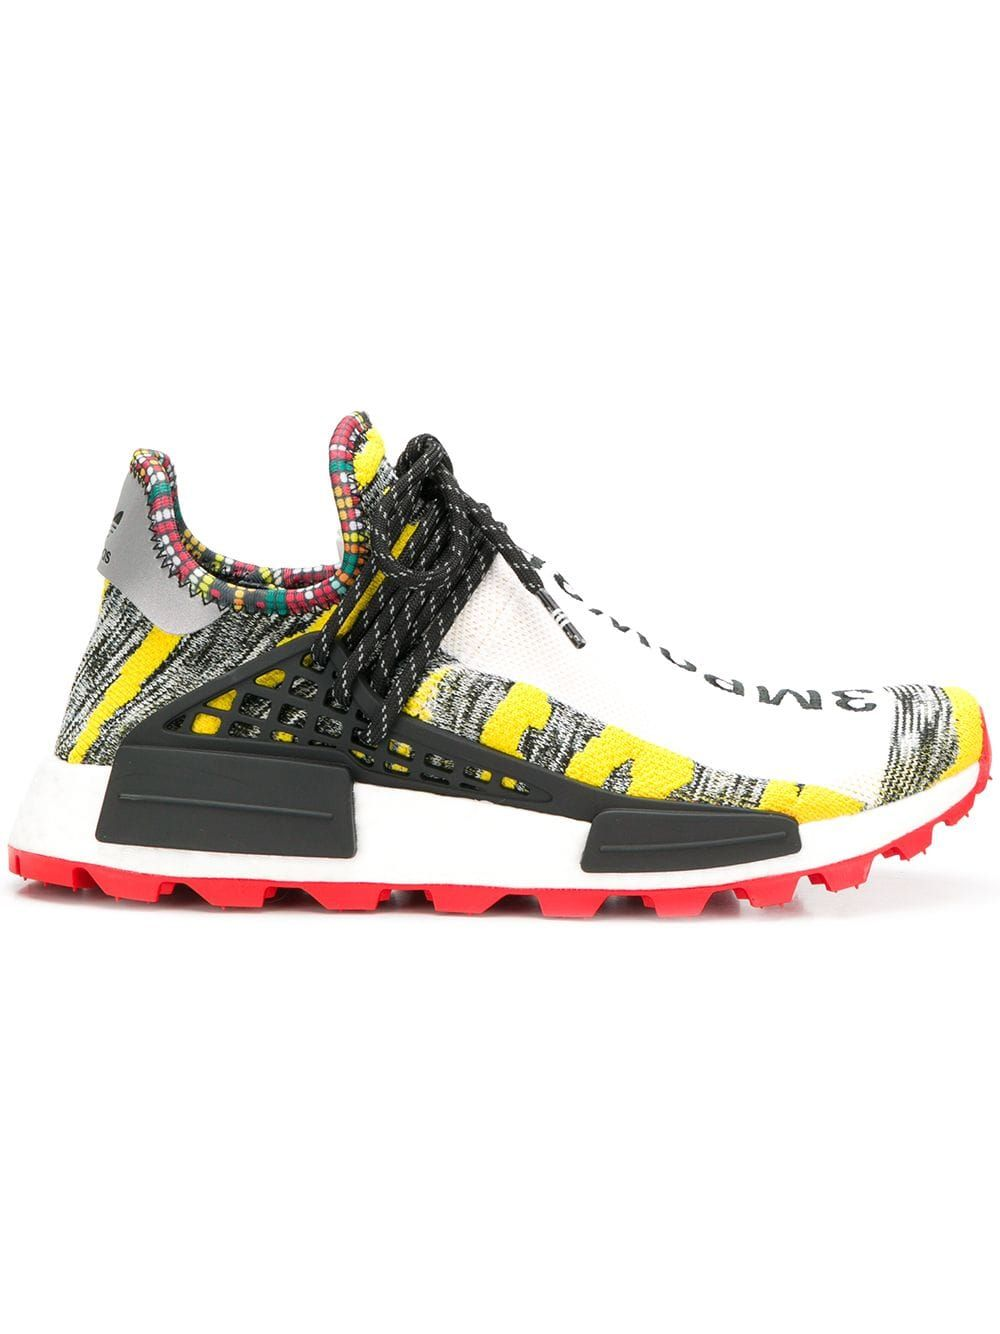 Adidas By Pharrell Williams yellow, grey and red x Pharrell